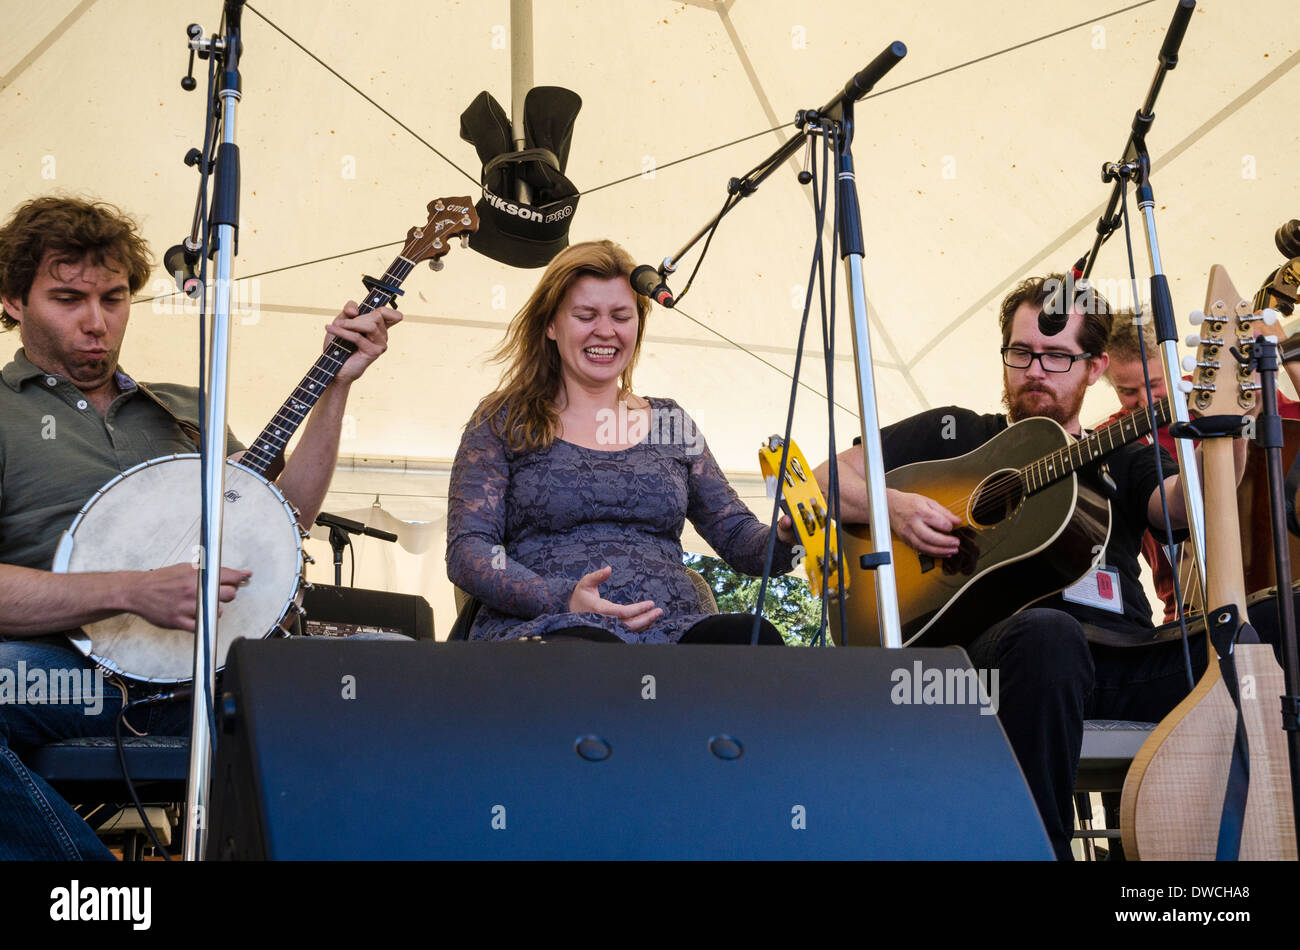 Newfoundland folk group 'The Once' perform at the Canmore Folk Music Festival, Alberta, Canada - Stock Image